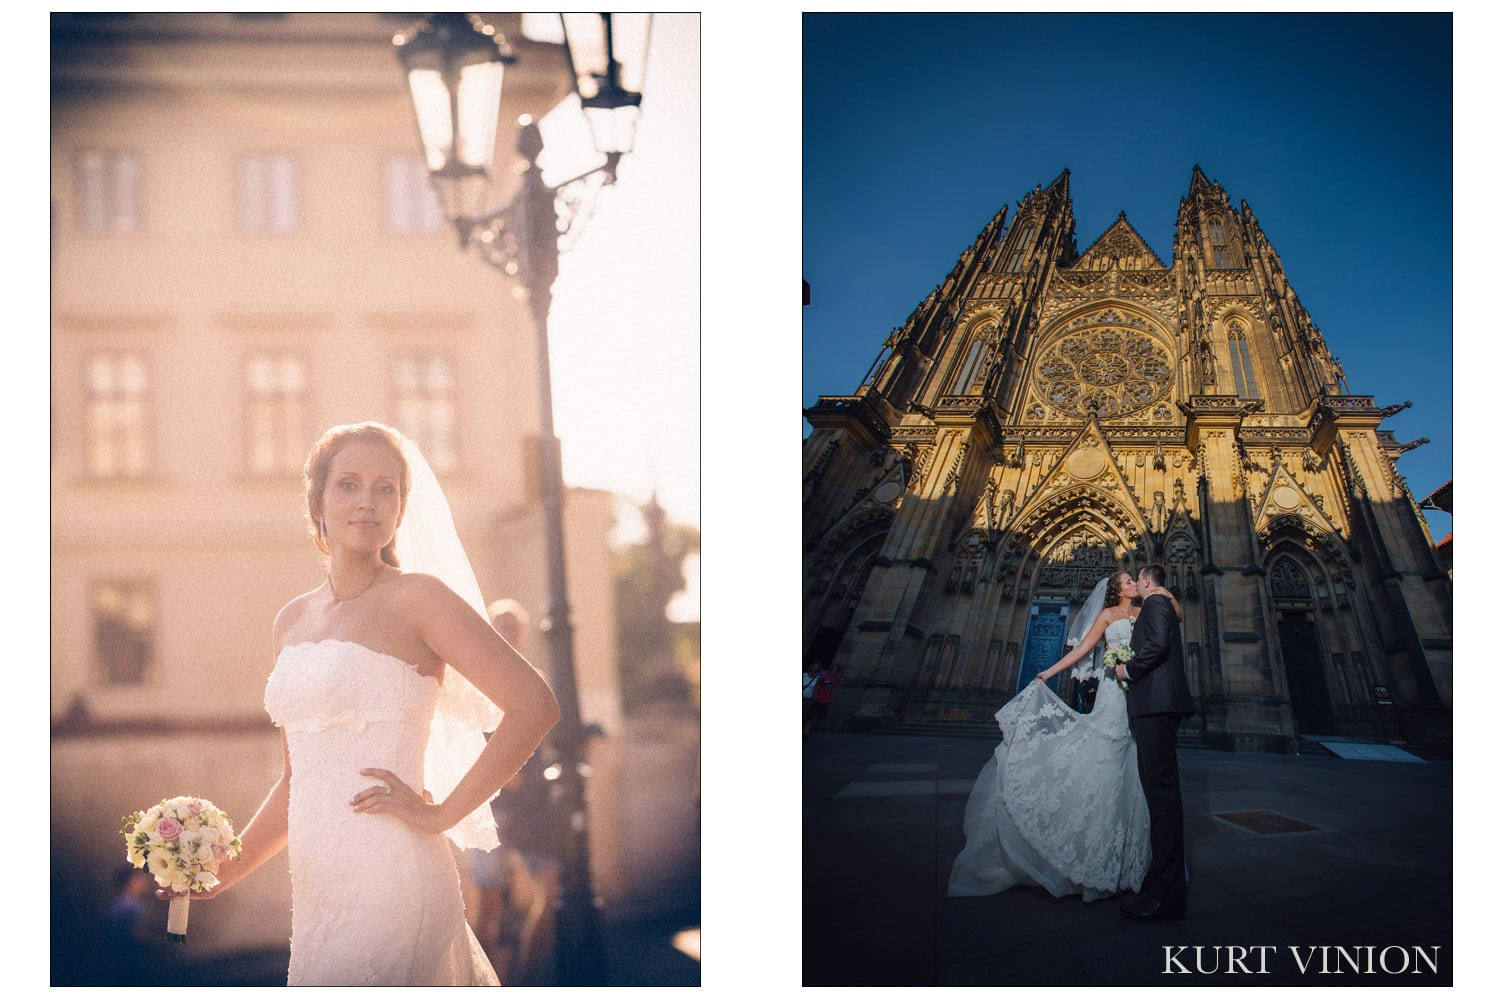 Castle Konopiste wedding / Oksana & Vladislav wedding day photography at Prague Castle